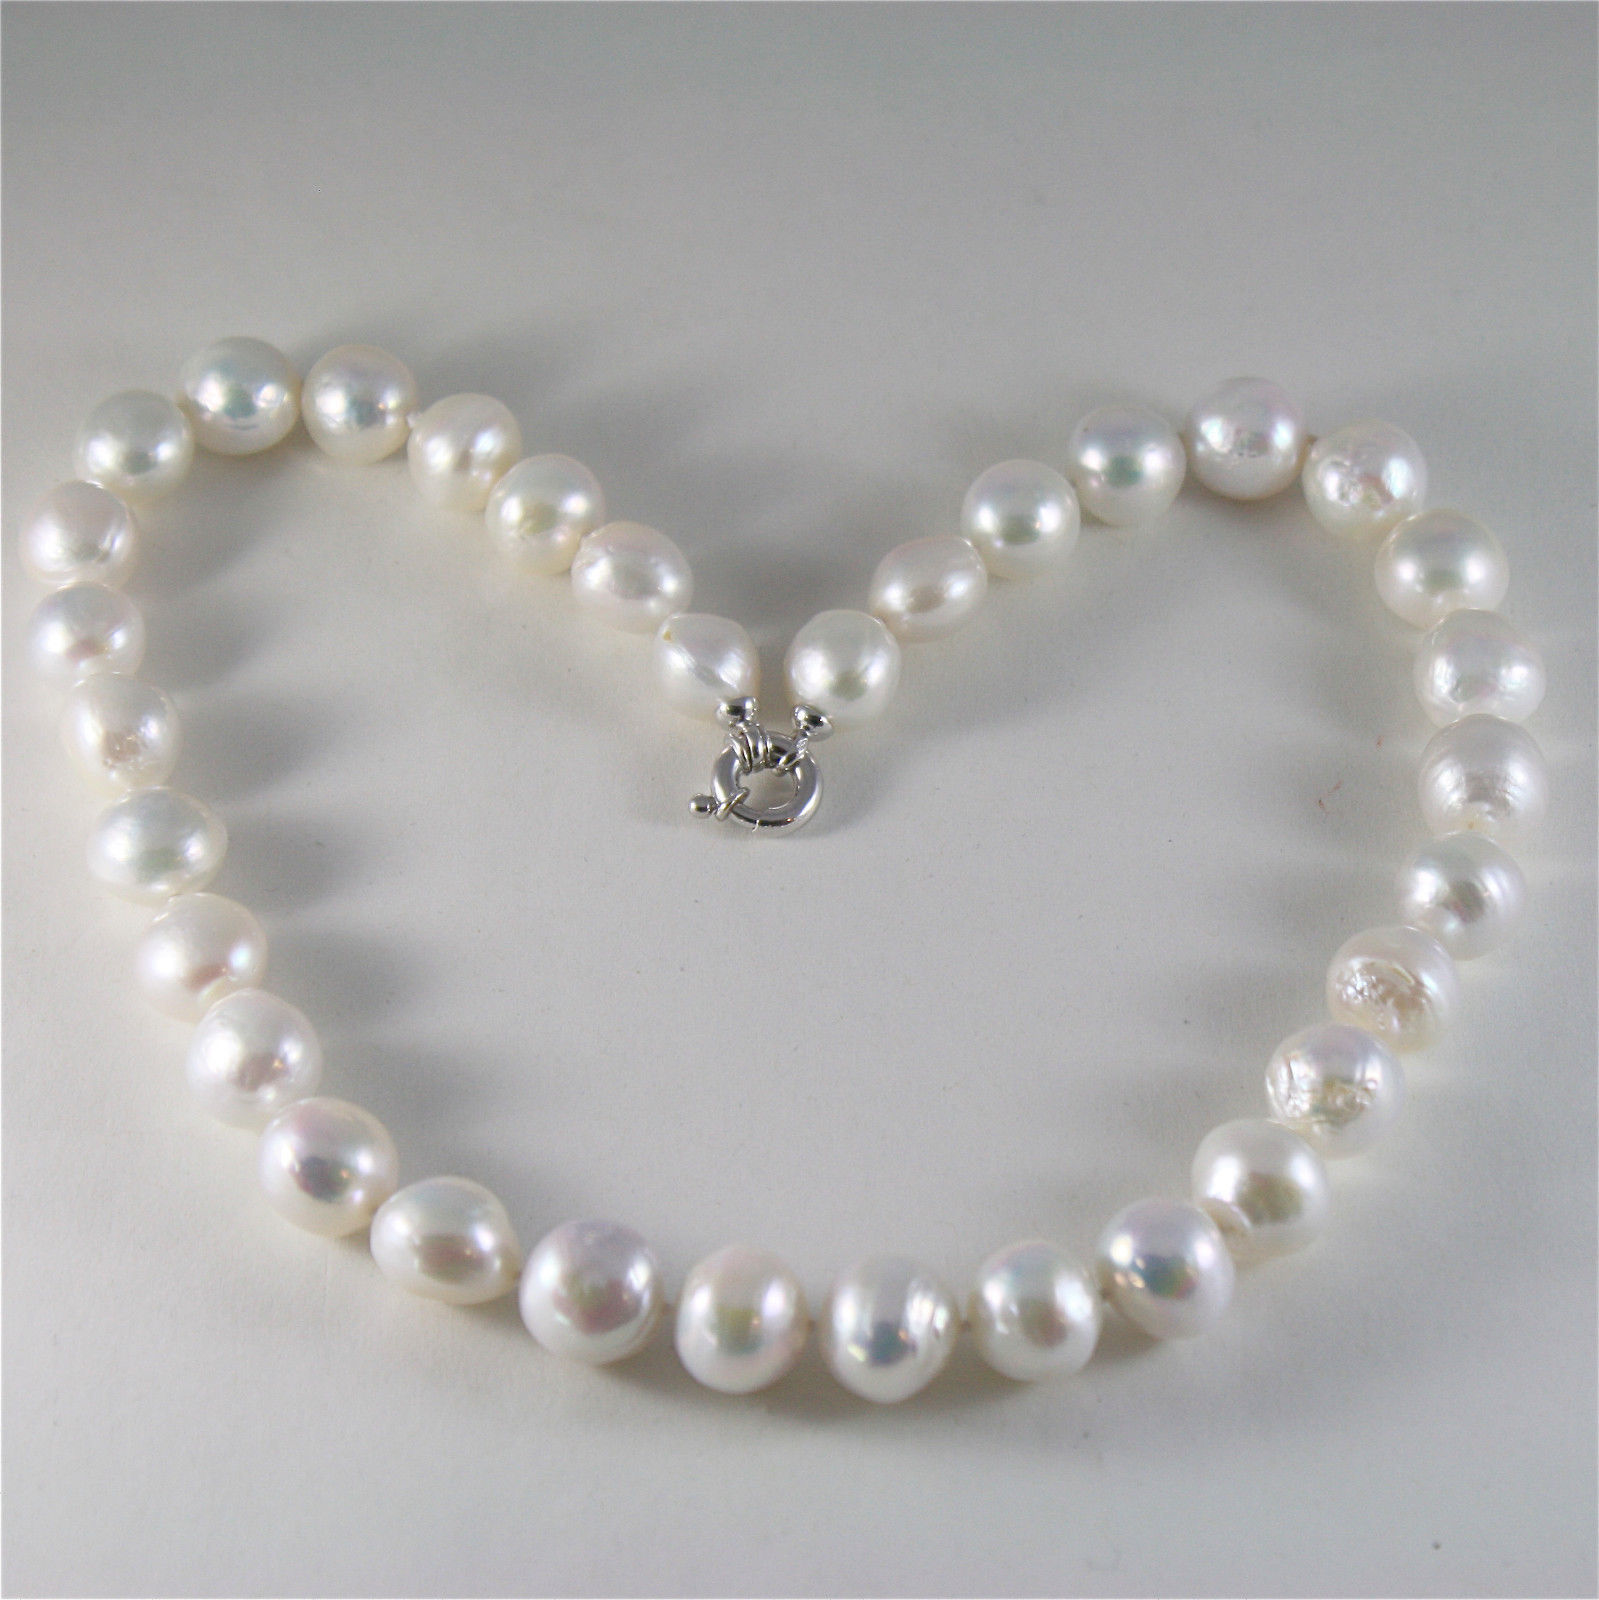 SOLID 18K WHITE GOLD NECKLACE WITH BIG LUSTER BAROQUE 13 MM PEARLS MADE IN ITALY